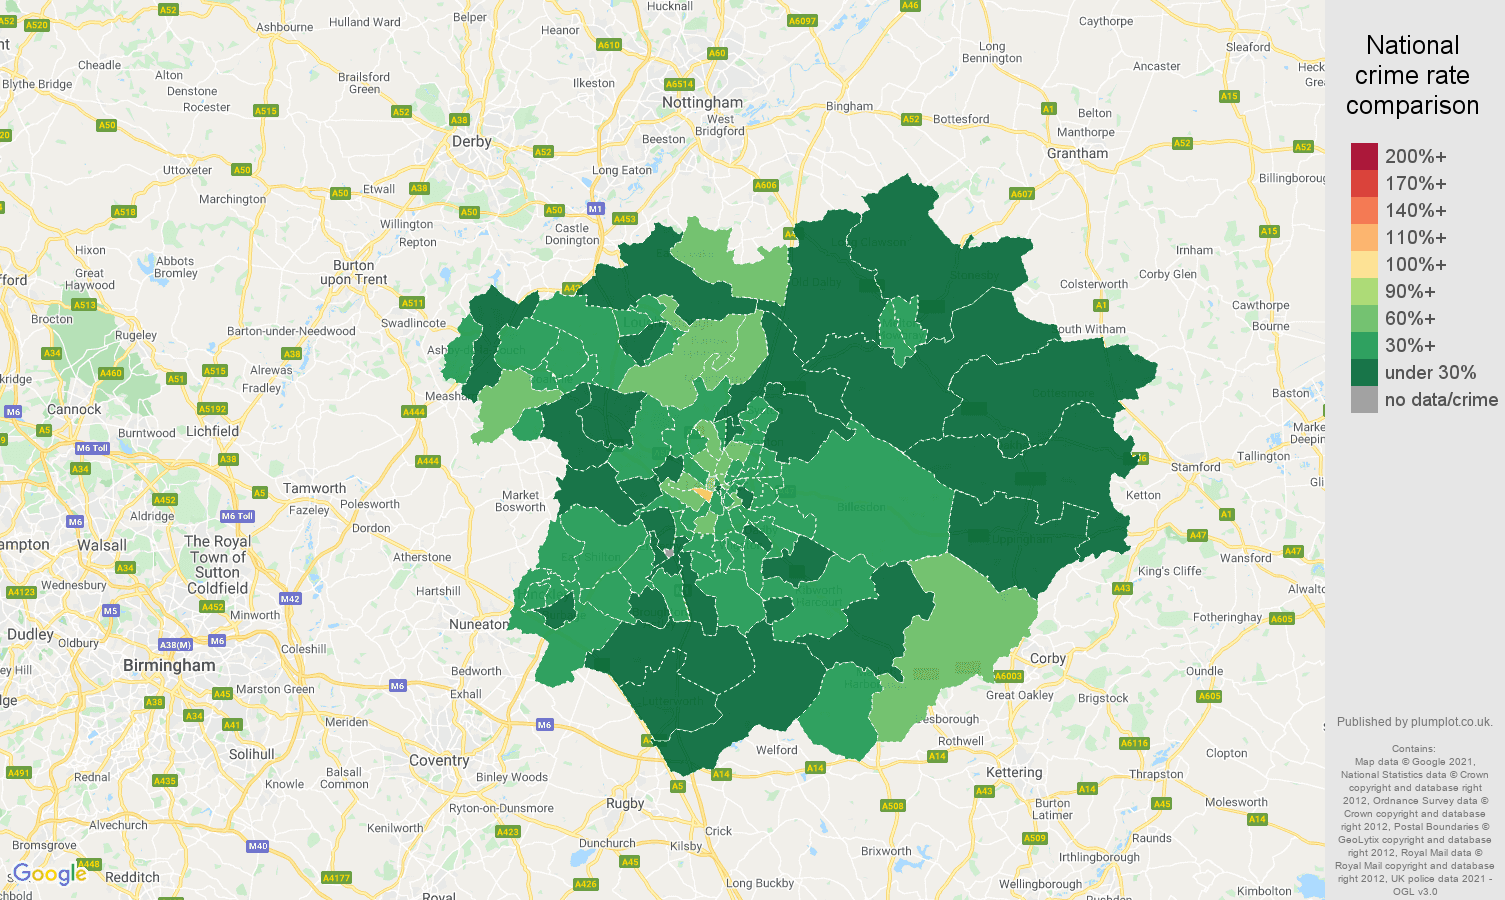 Leicester antisocial behaviour crime rate comparison map